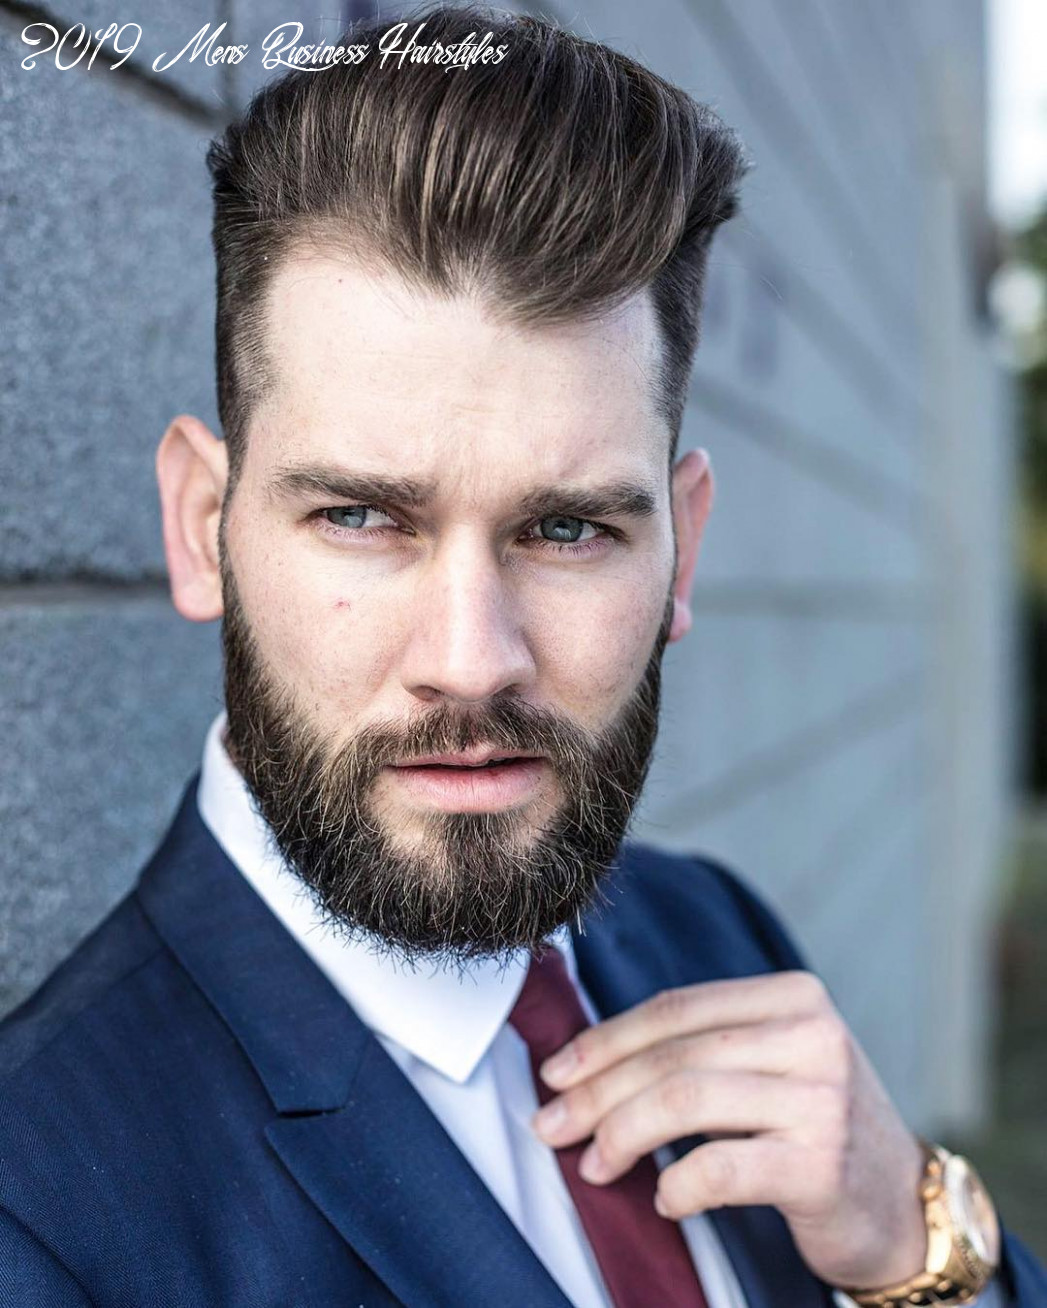 Top 10 business hairstyles for men 2019 mens business hairstyles